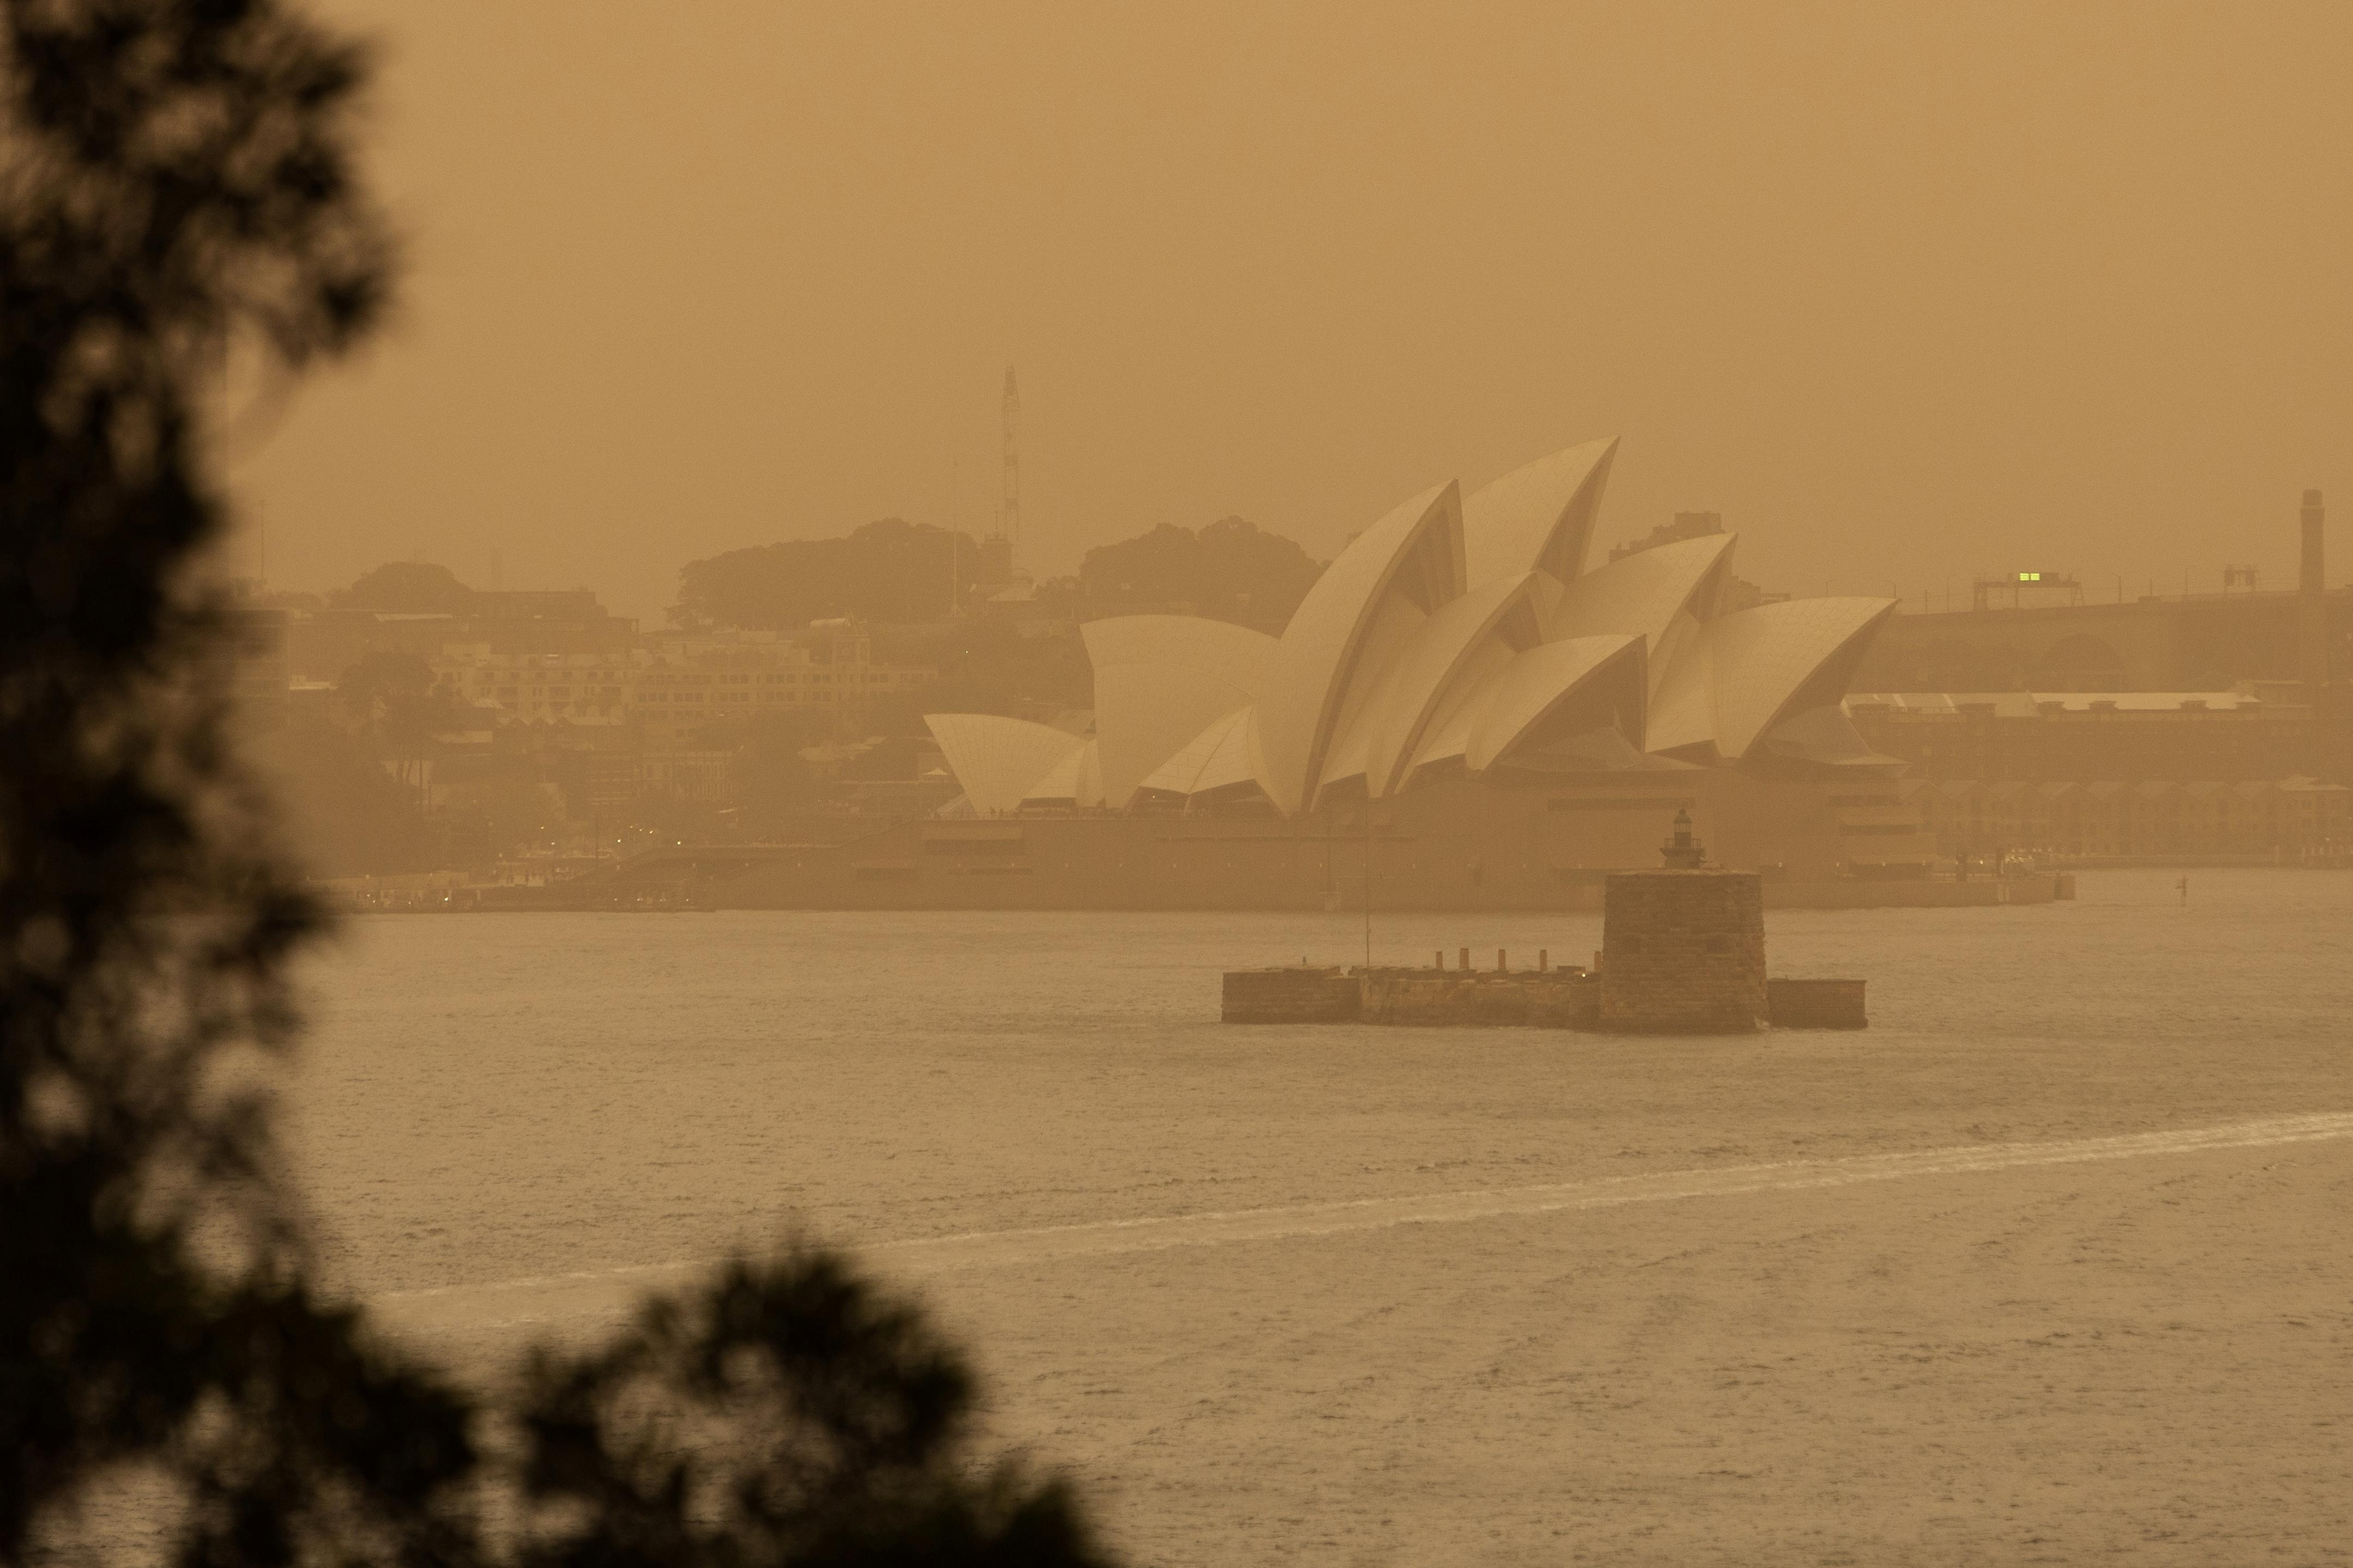 Aircraft combats Sydney blaze as Australians reel from bushfires